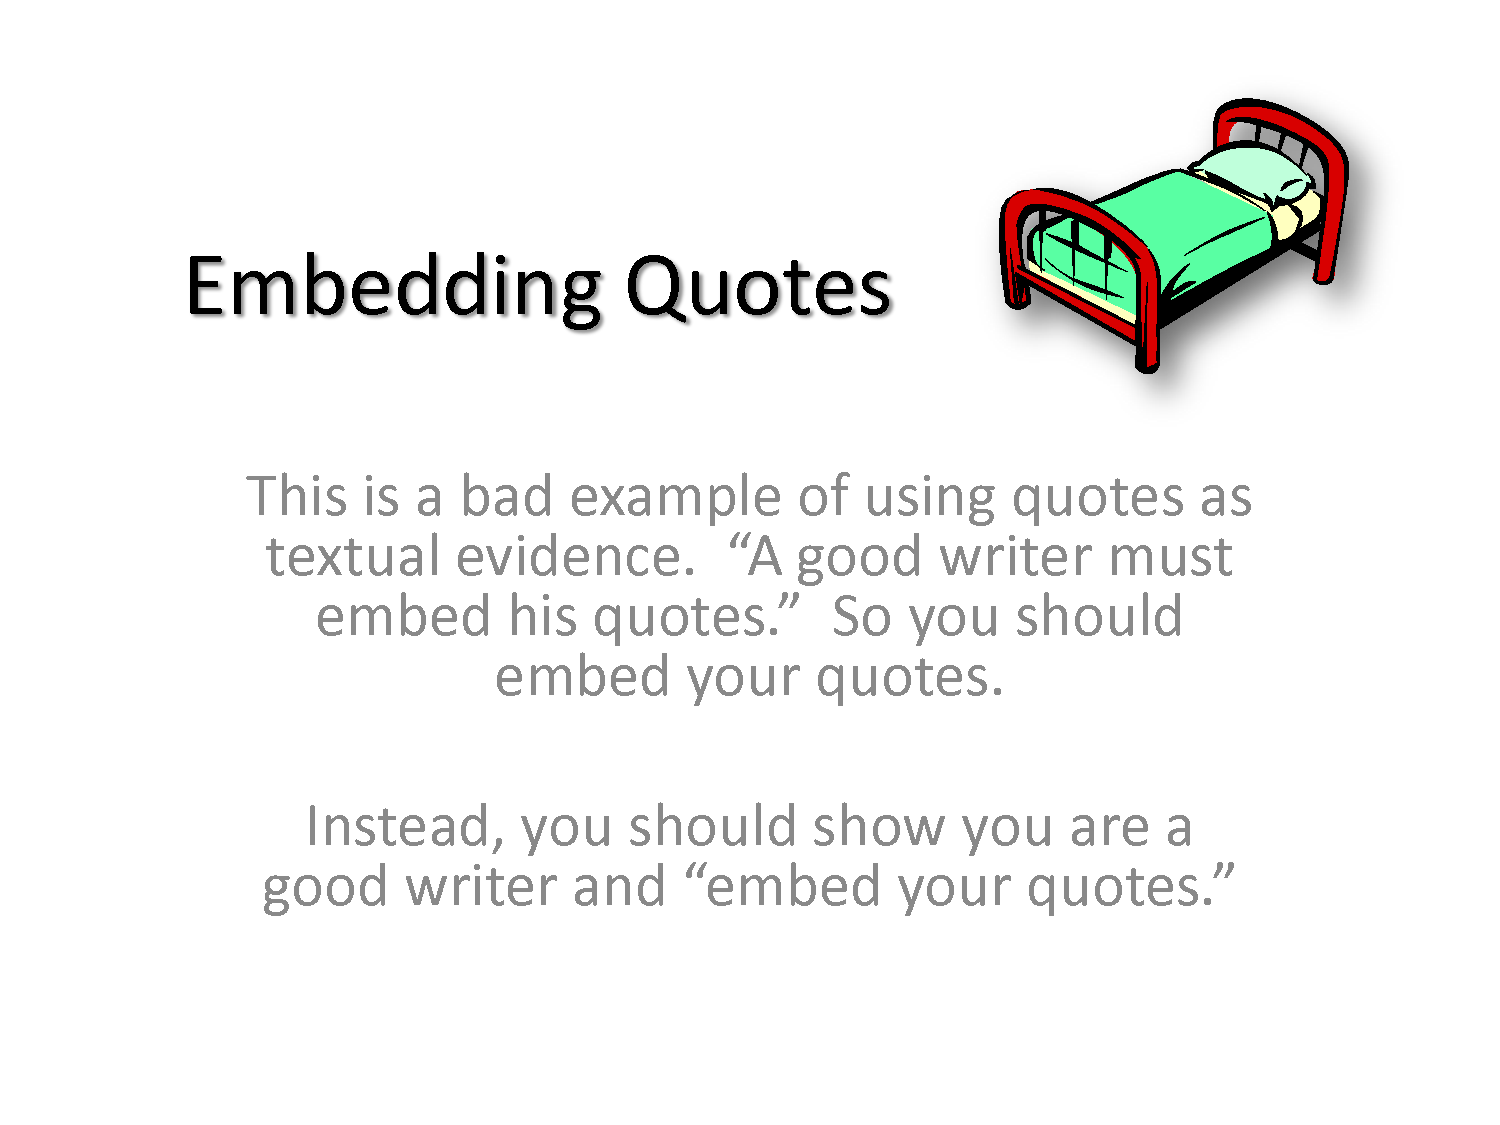 embed quotes essay Quotations, better known though their abbreviation as 'quotes', are a form of evidence used in vce essays.